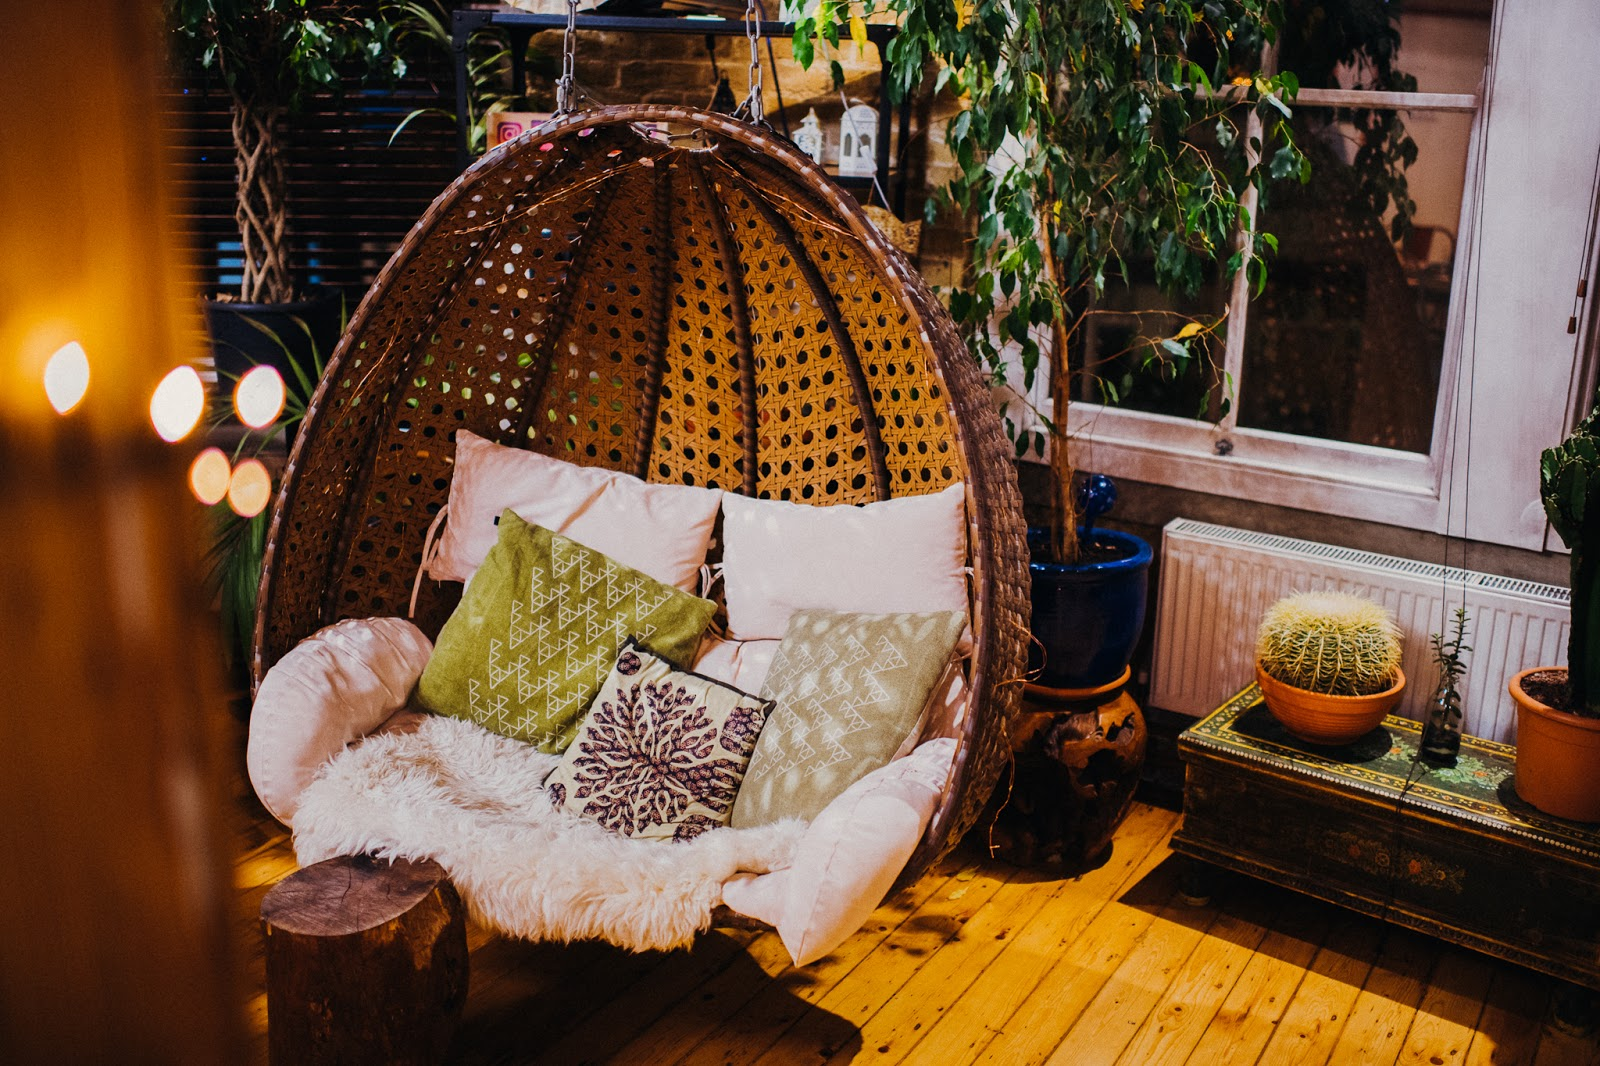 A hanging wicker chair with green and white cushions inside.